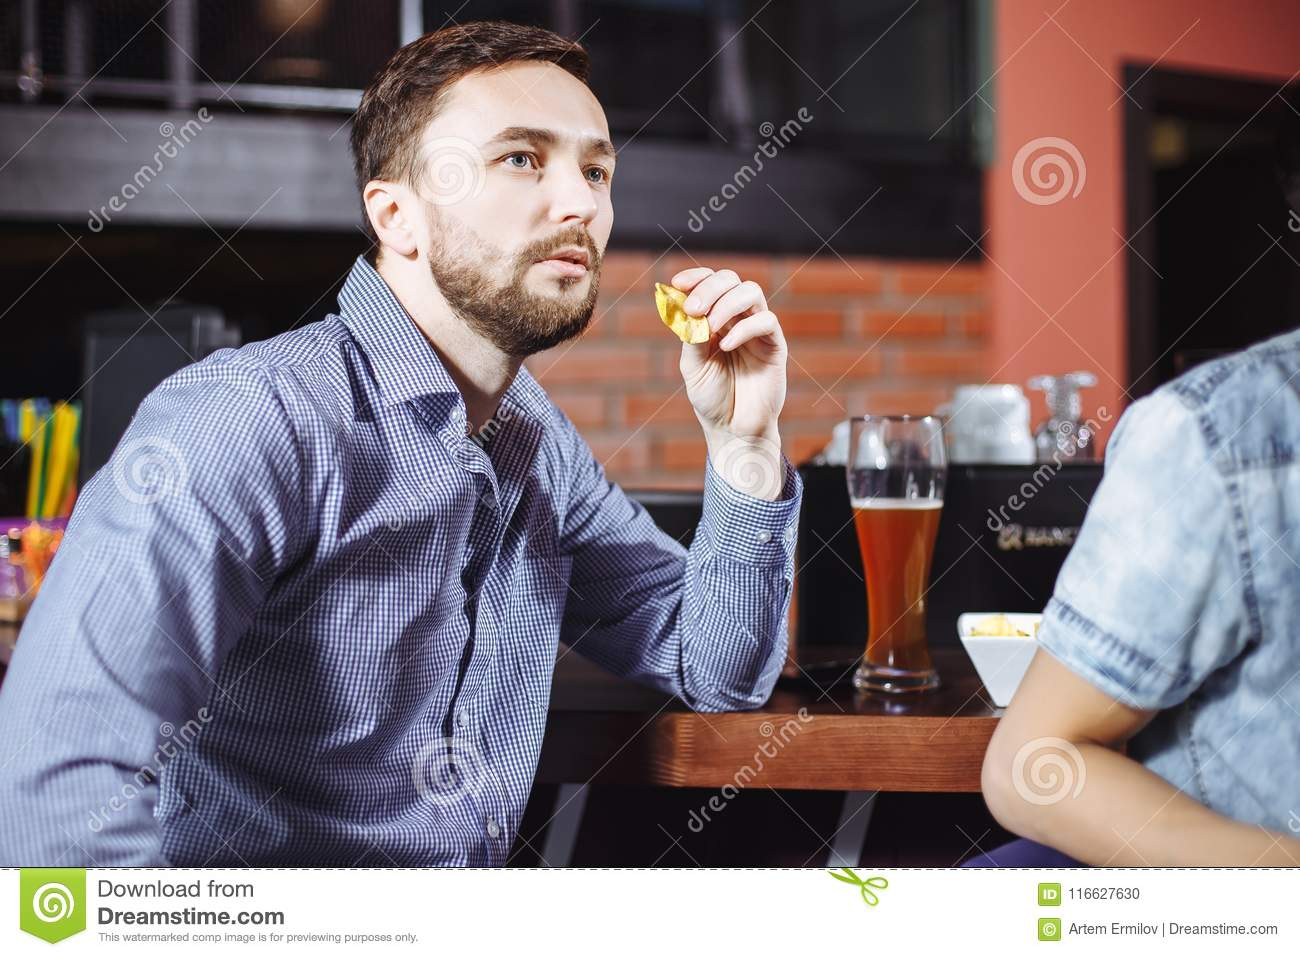 Young handsome man drinking beer and watching the game on TV in the bar